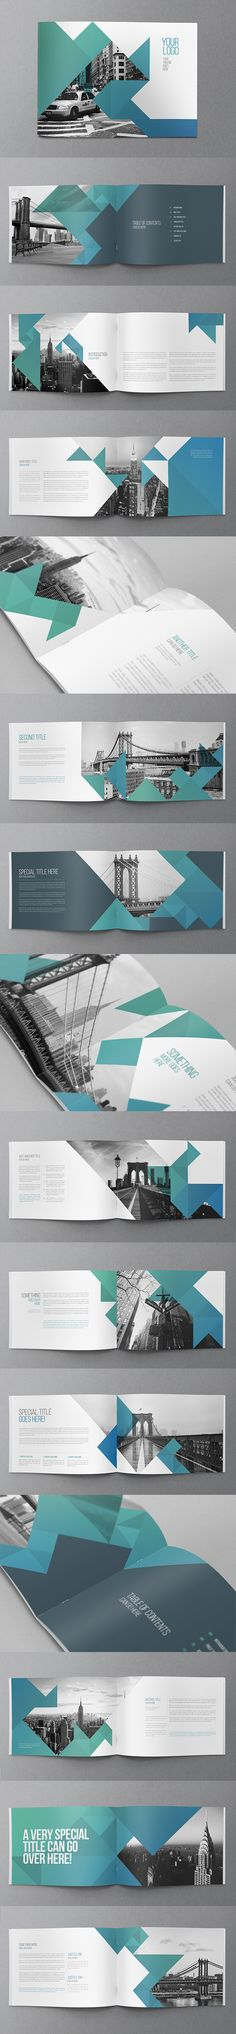 Cool Modern Brochure - Brochures Print Templates Clean, modern and simple design ideal for any purposes. Very easy to adapt and customize. Brochure Indesign, Design Brochure, Booklet Design, Brochure Layout, Branding Design, Brochure Template, Layout Design, Graphisches Design, Graphic Design Layouts